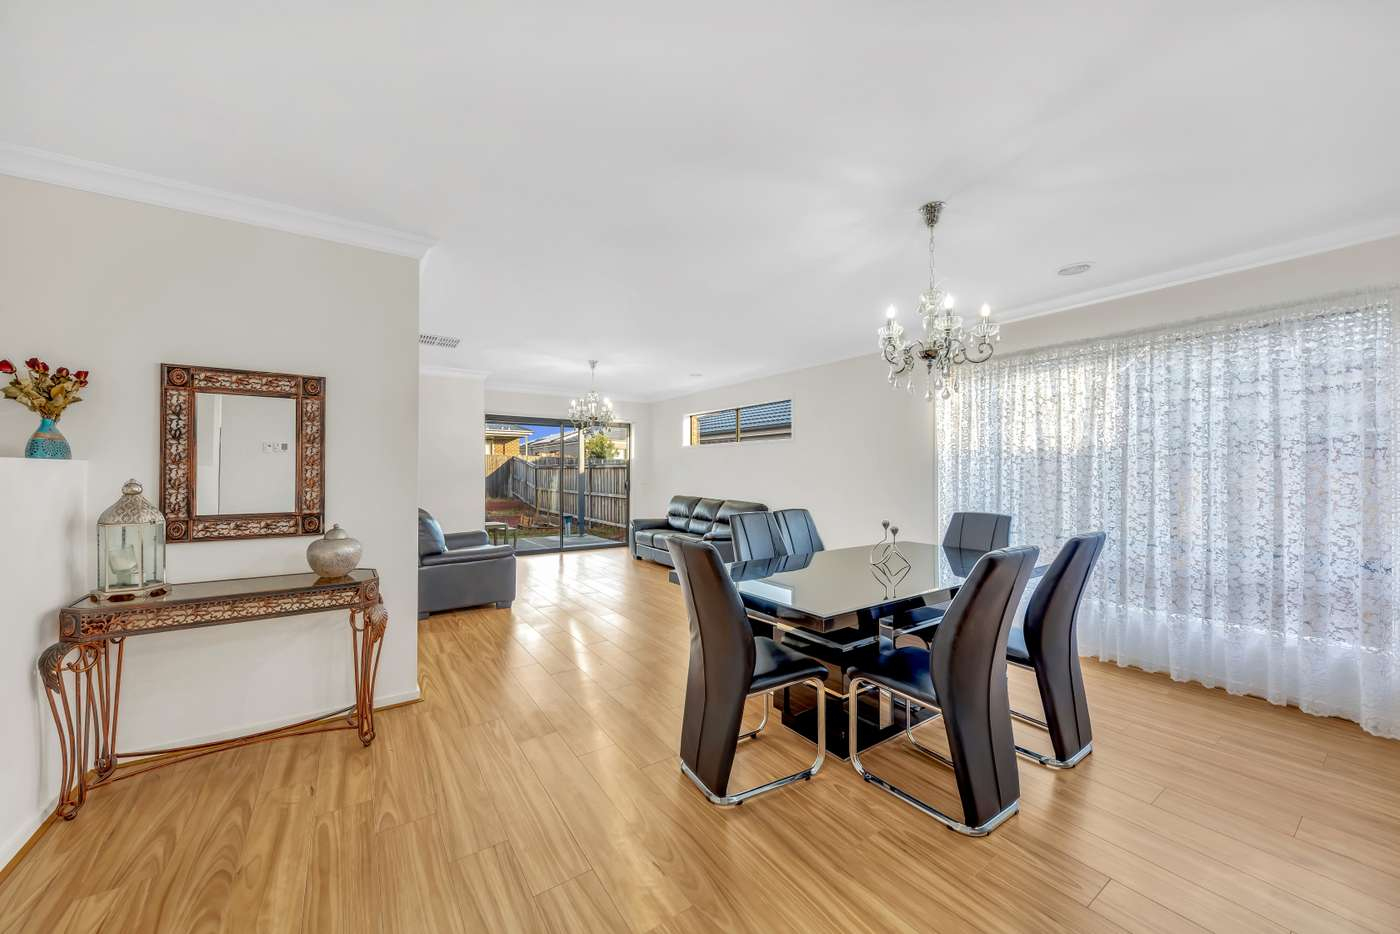 Fifth view of Homely house listing, 38 Mackenzie Drive, Wollert VIC 3750